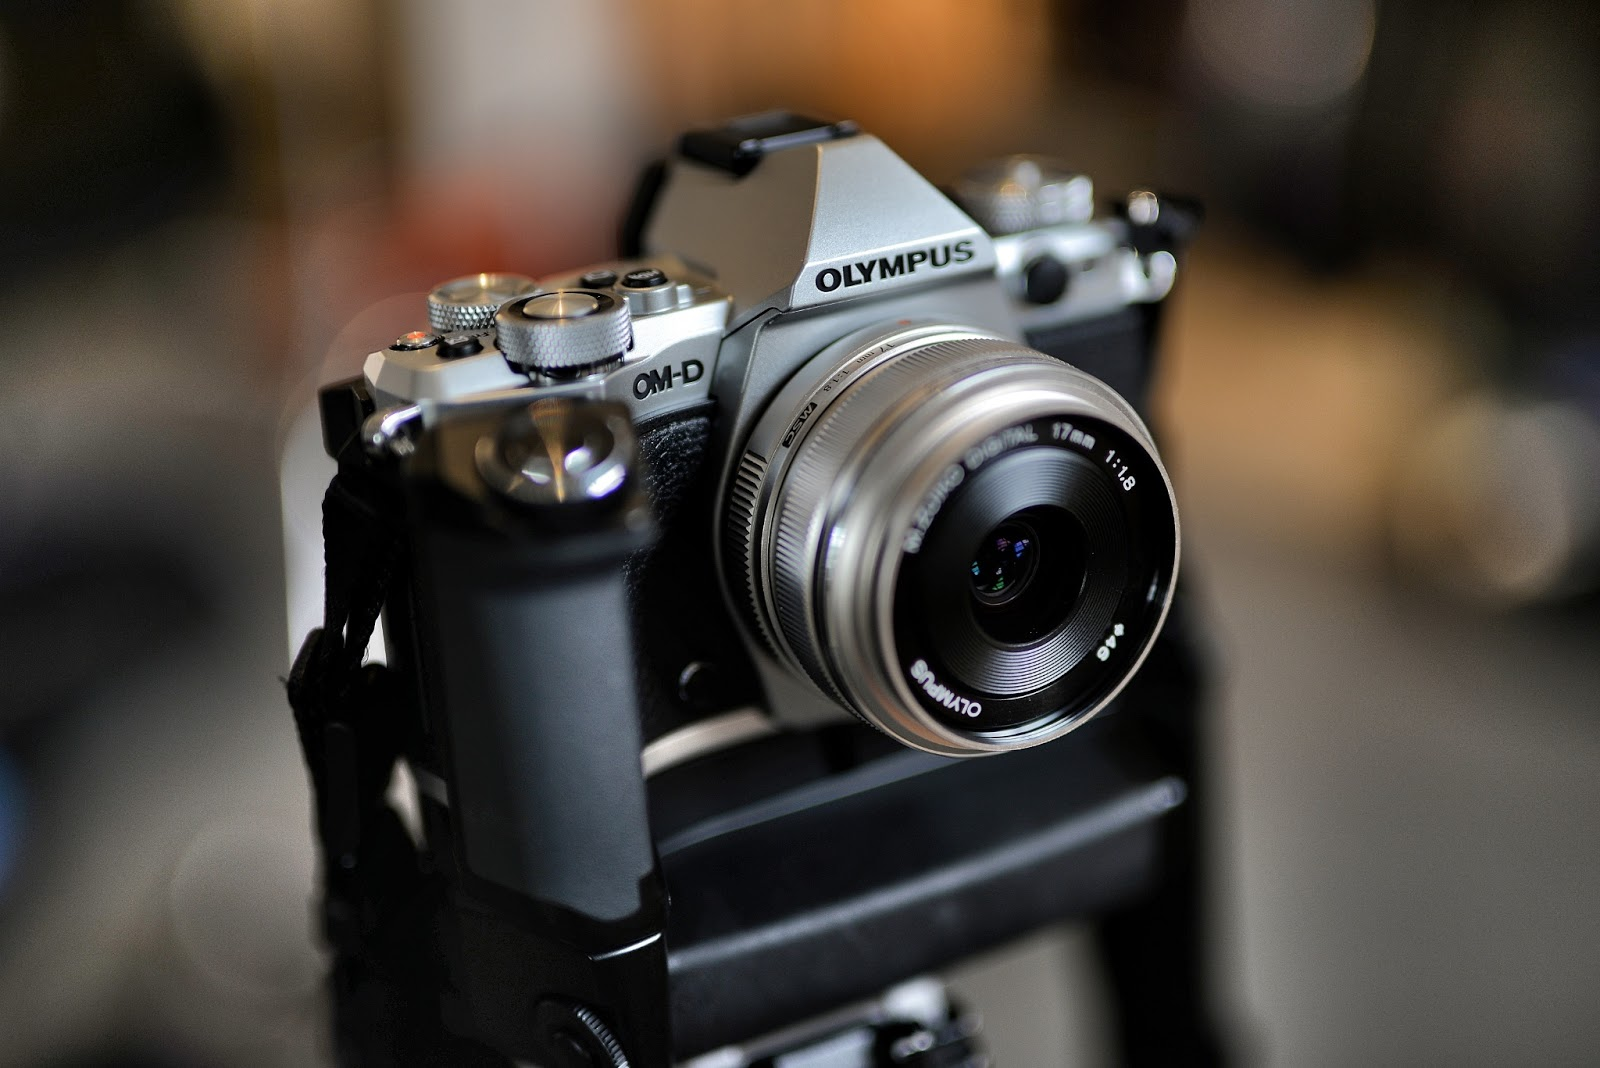 The Visual Science Lab Kirk Tuck Why I Keep The Olympus